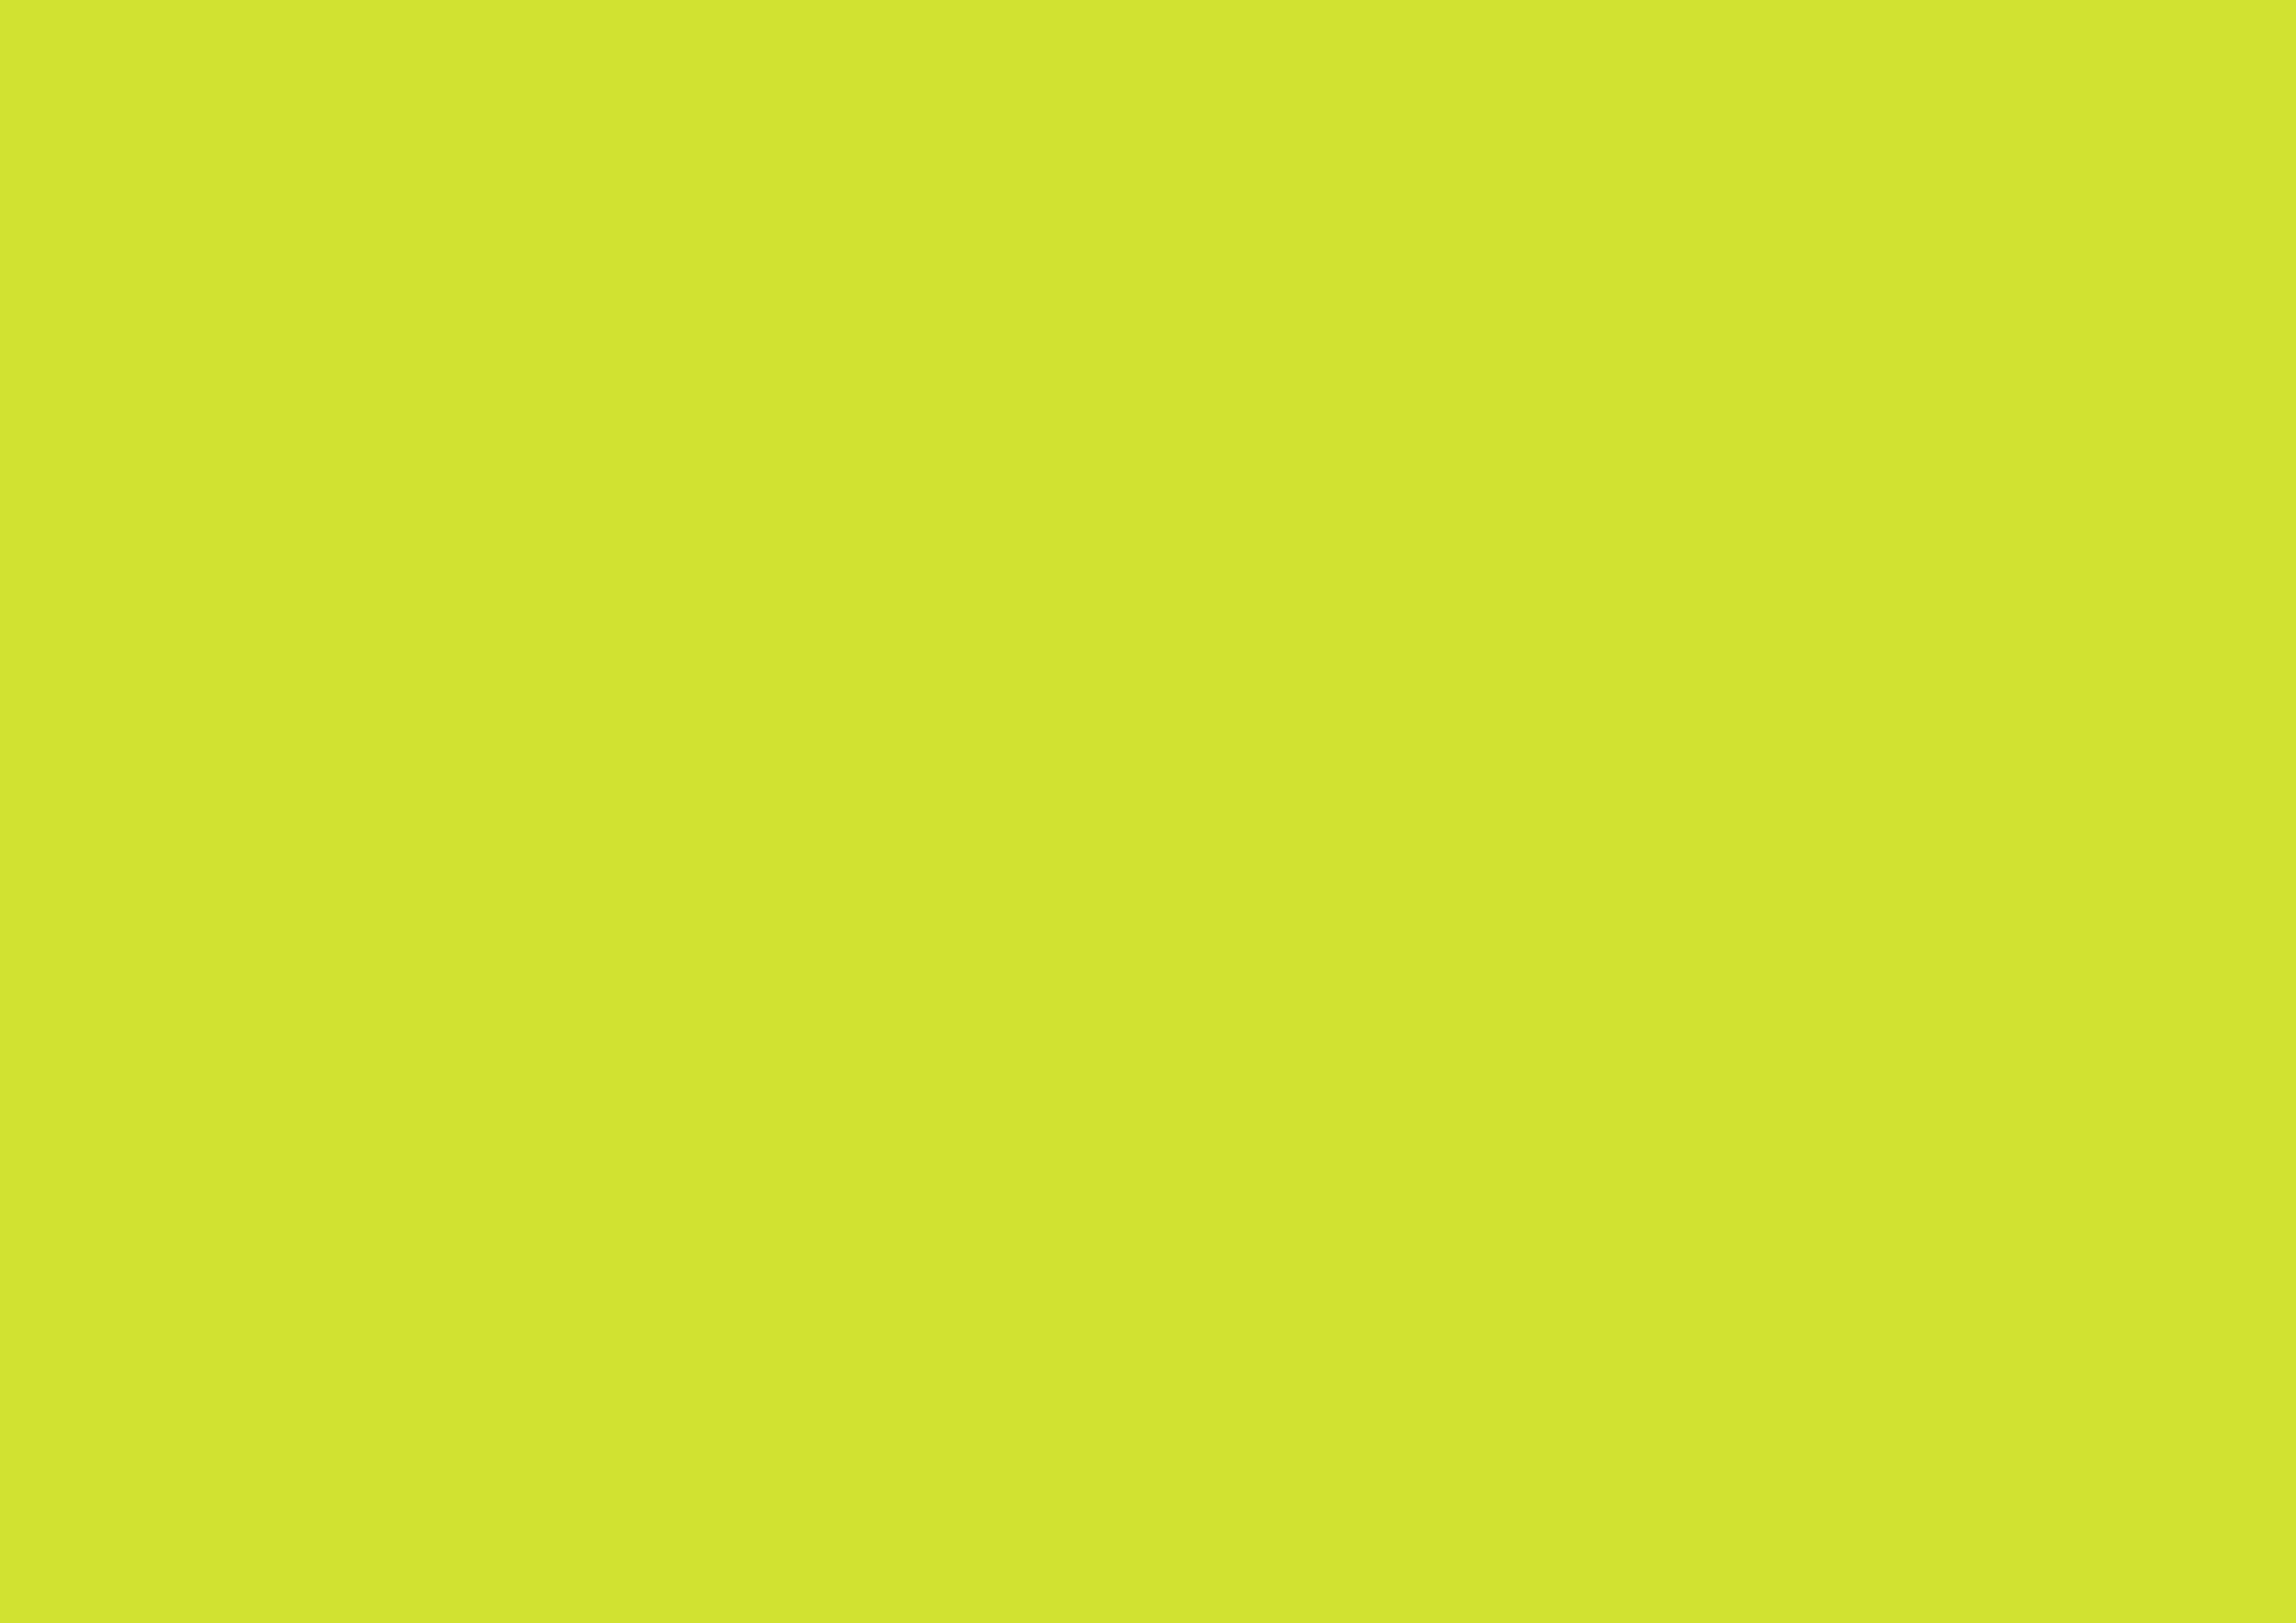 3508x2480 Pear Solid Color Background